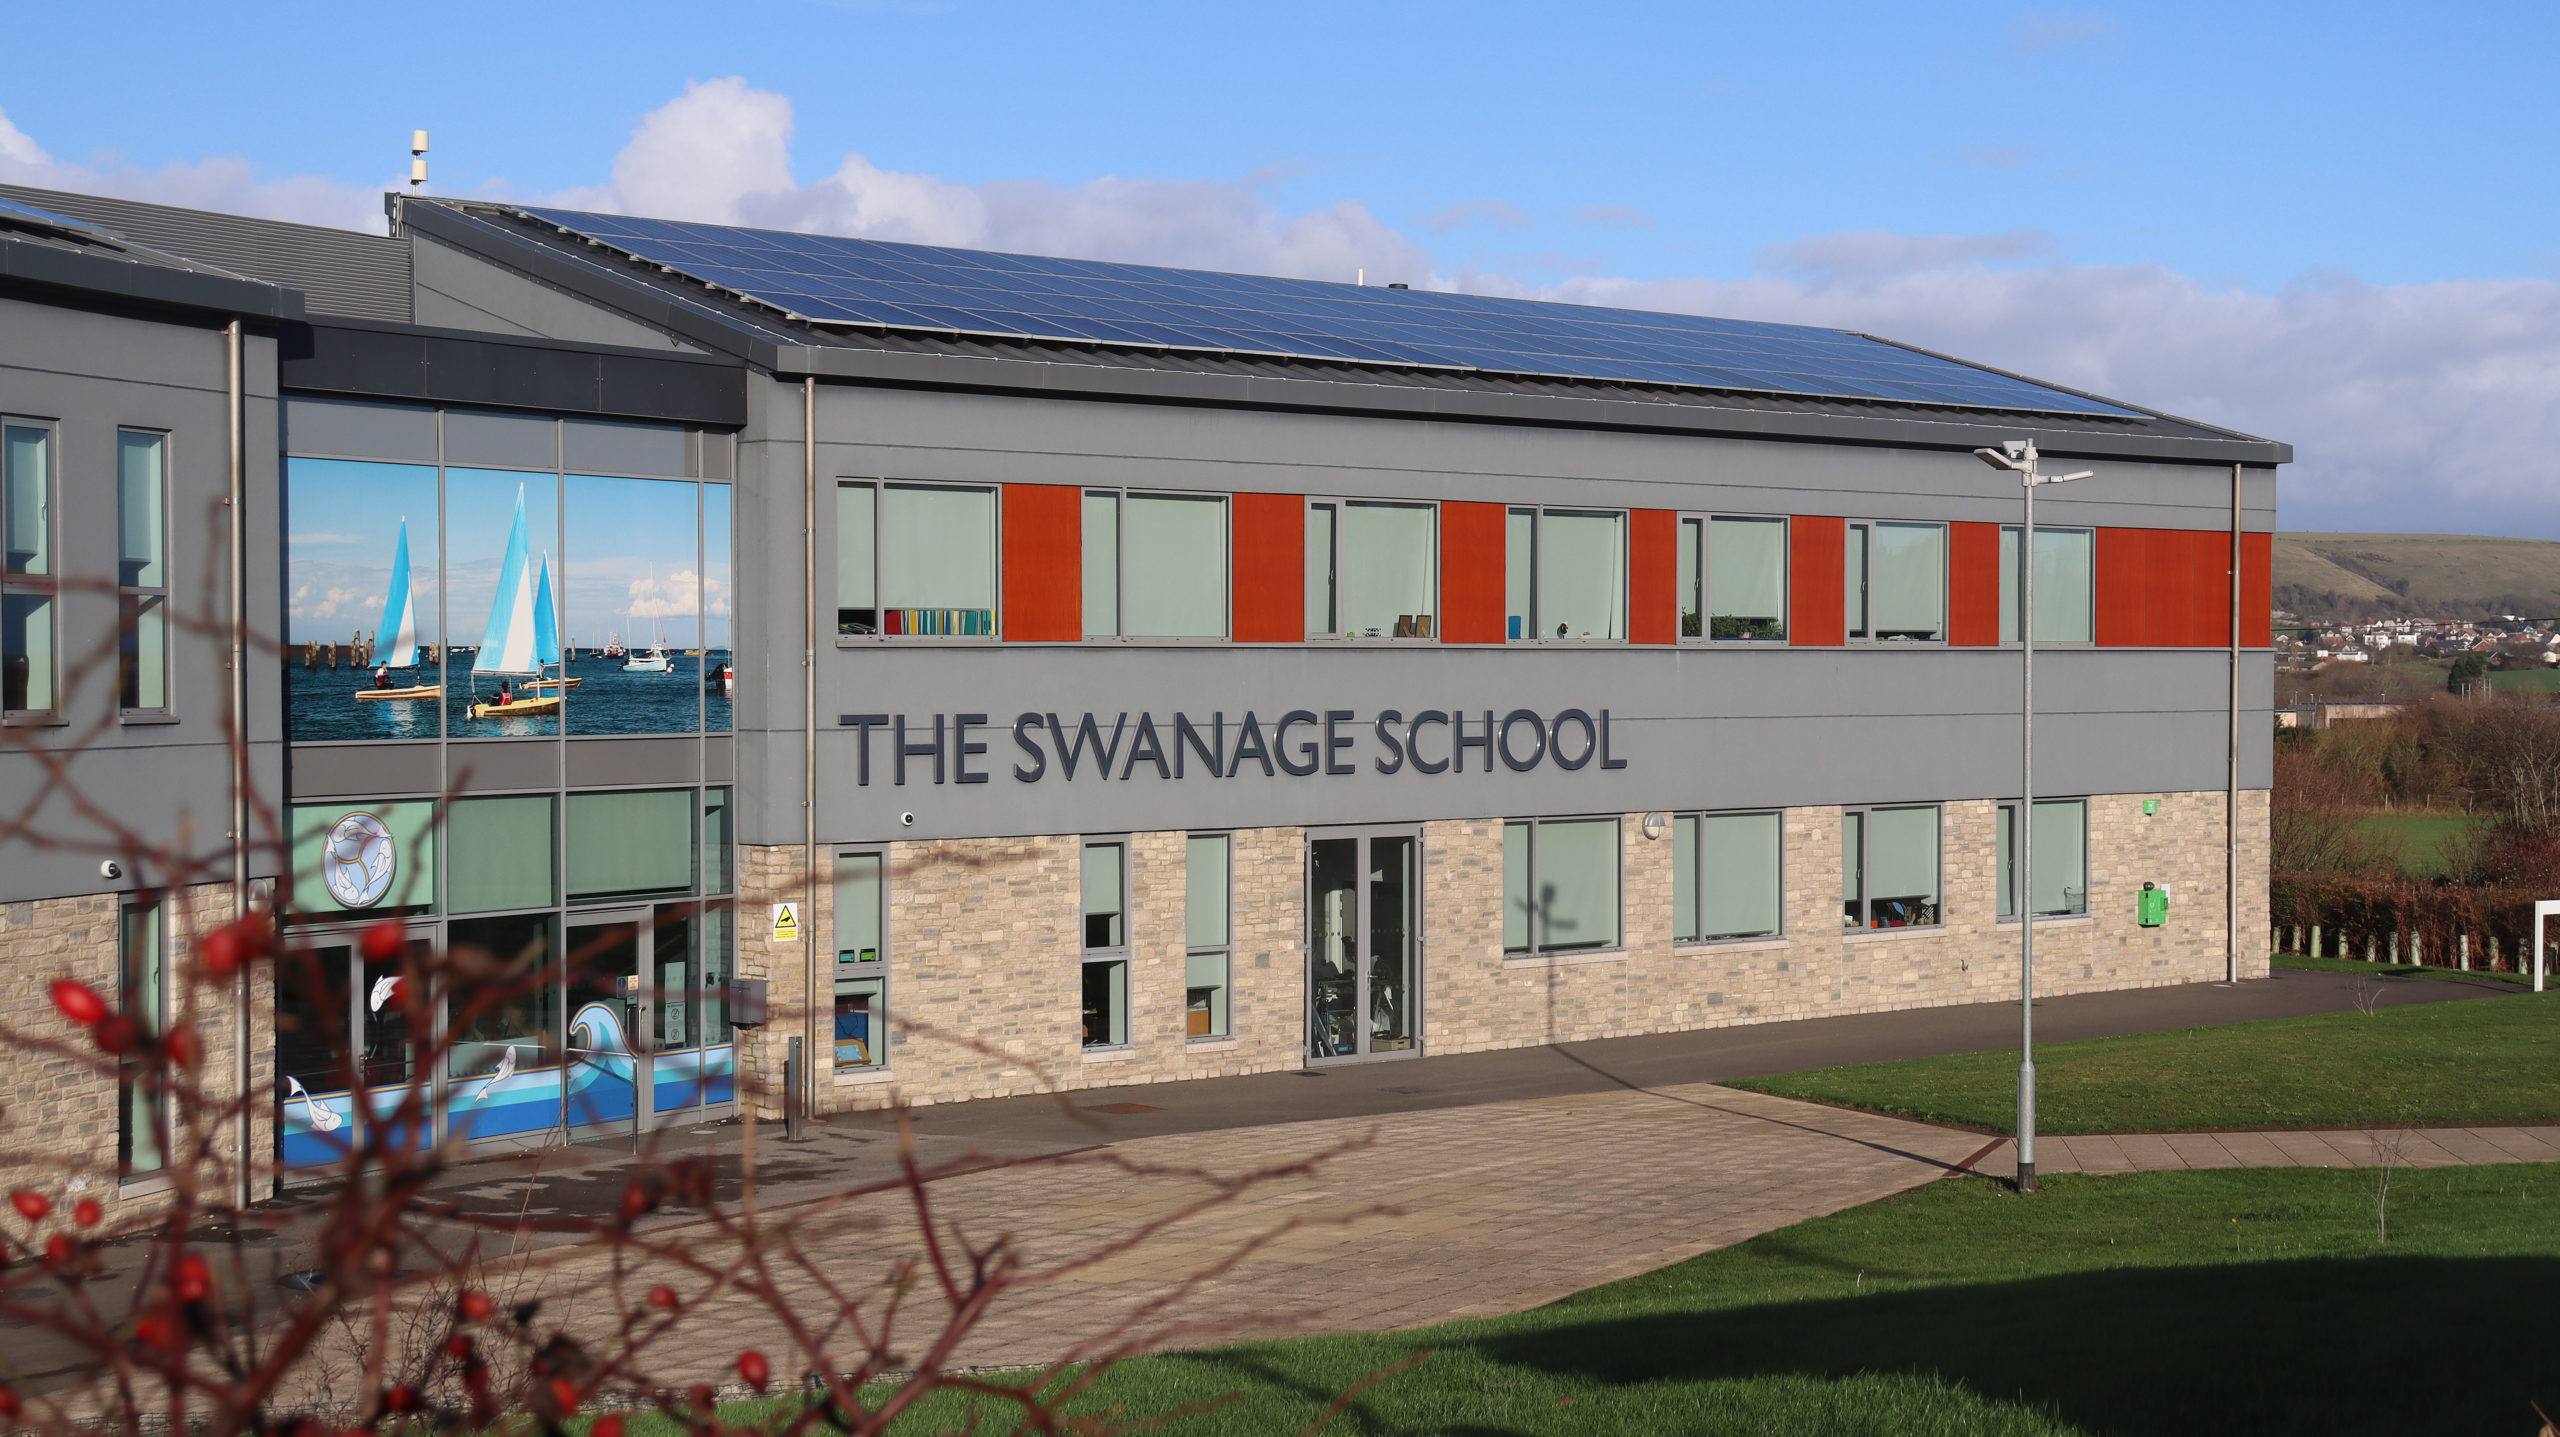 The exterior of The Swanage School